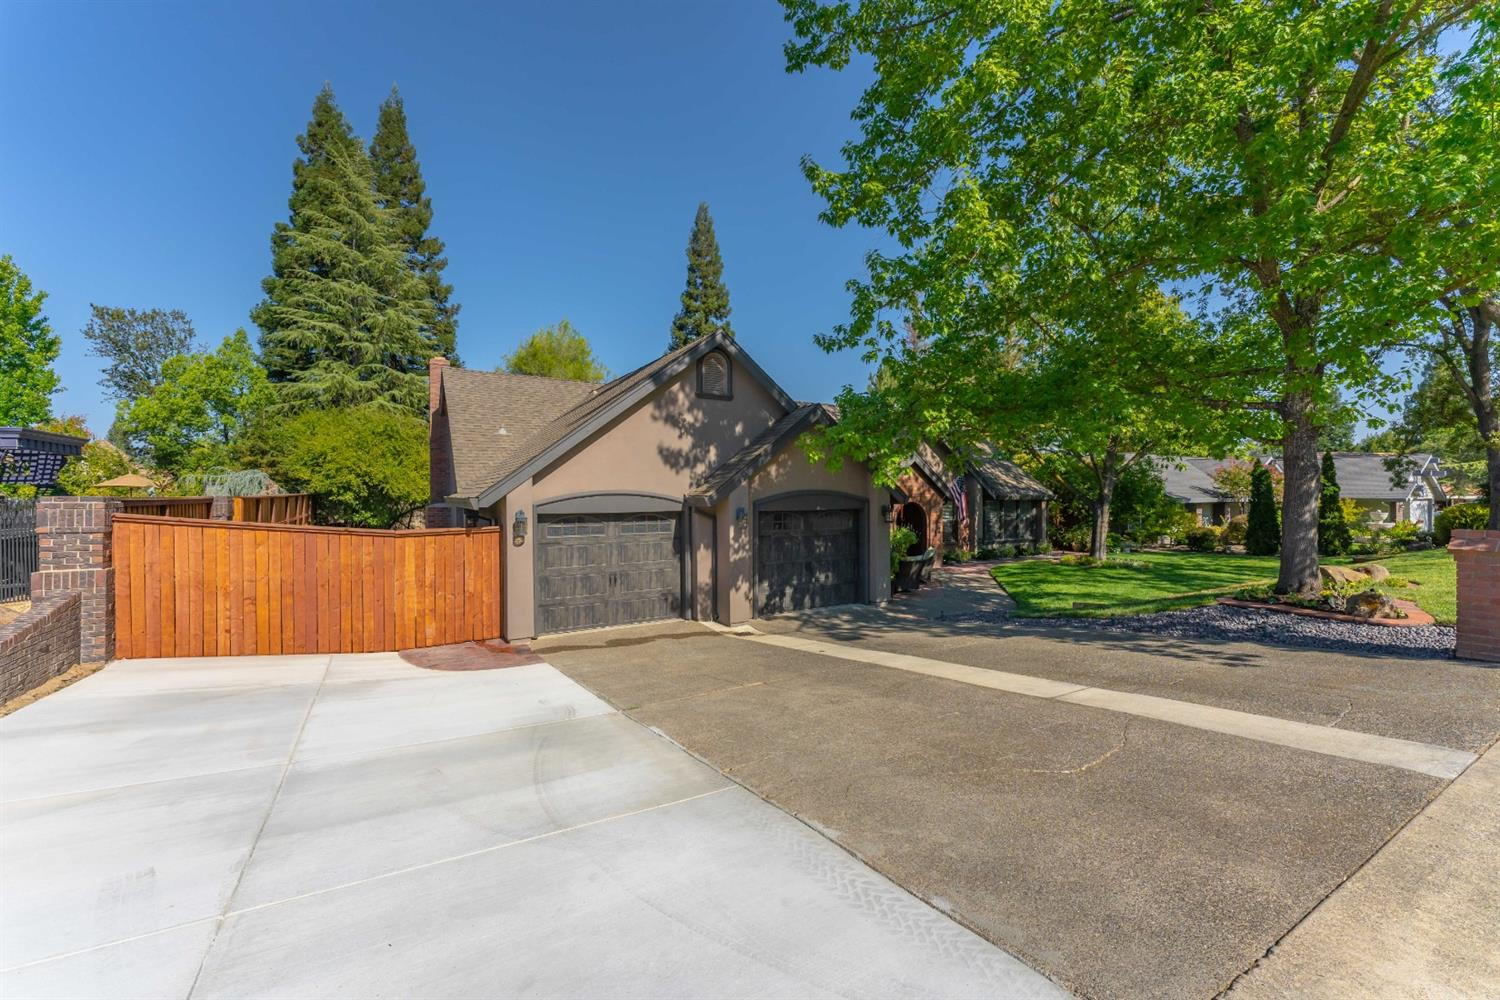 Photo 2 for Listing #221114345